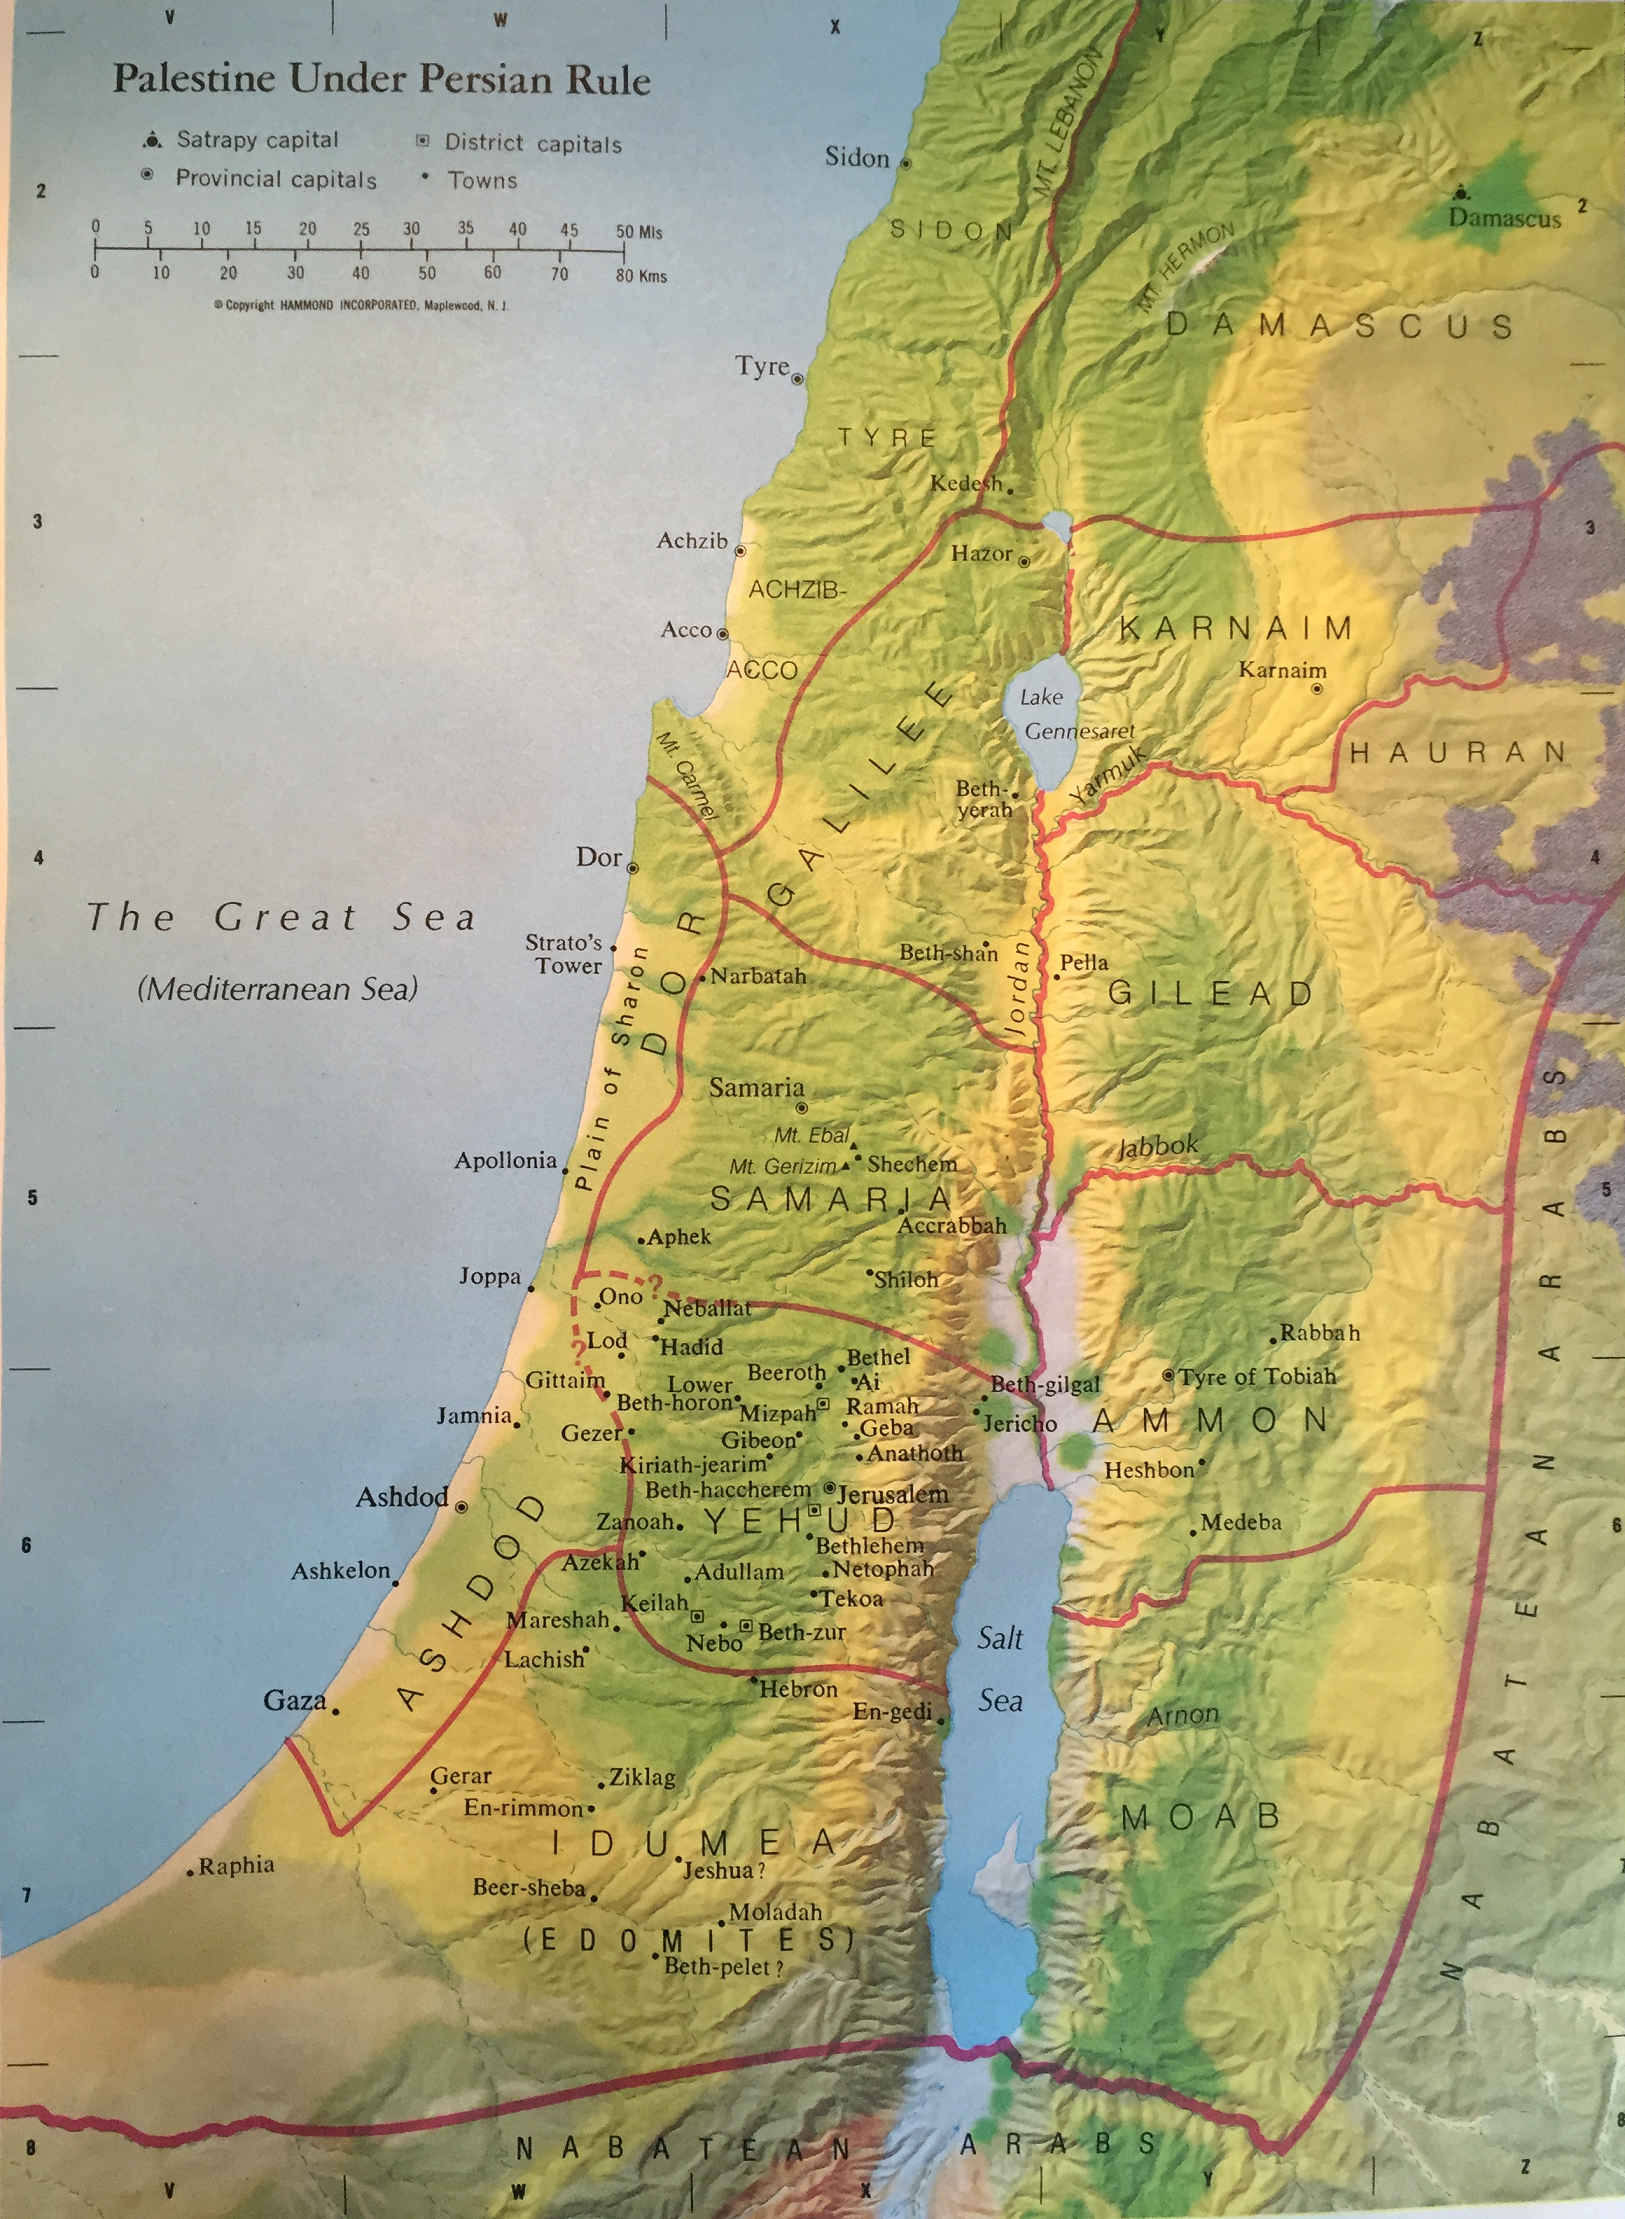 Bible Map: Palestine Under Persian Rule